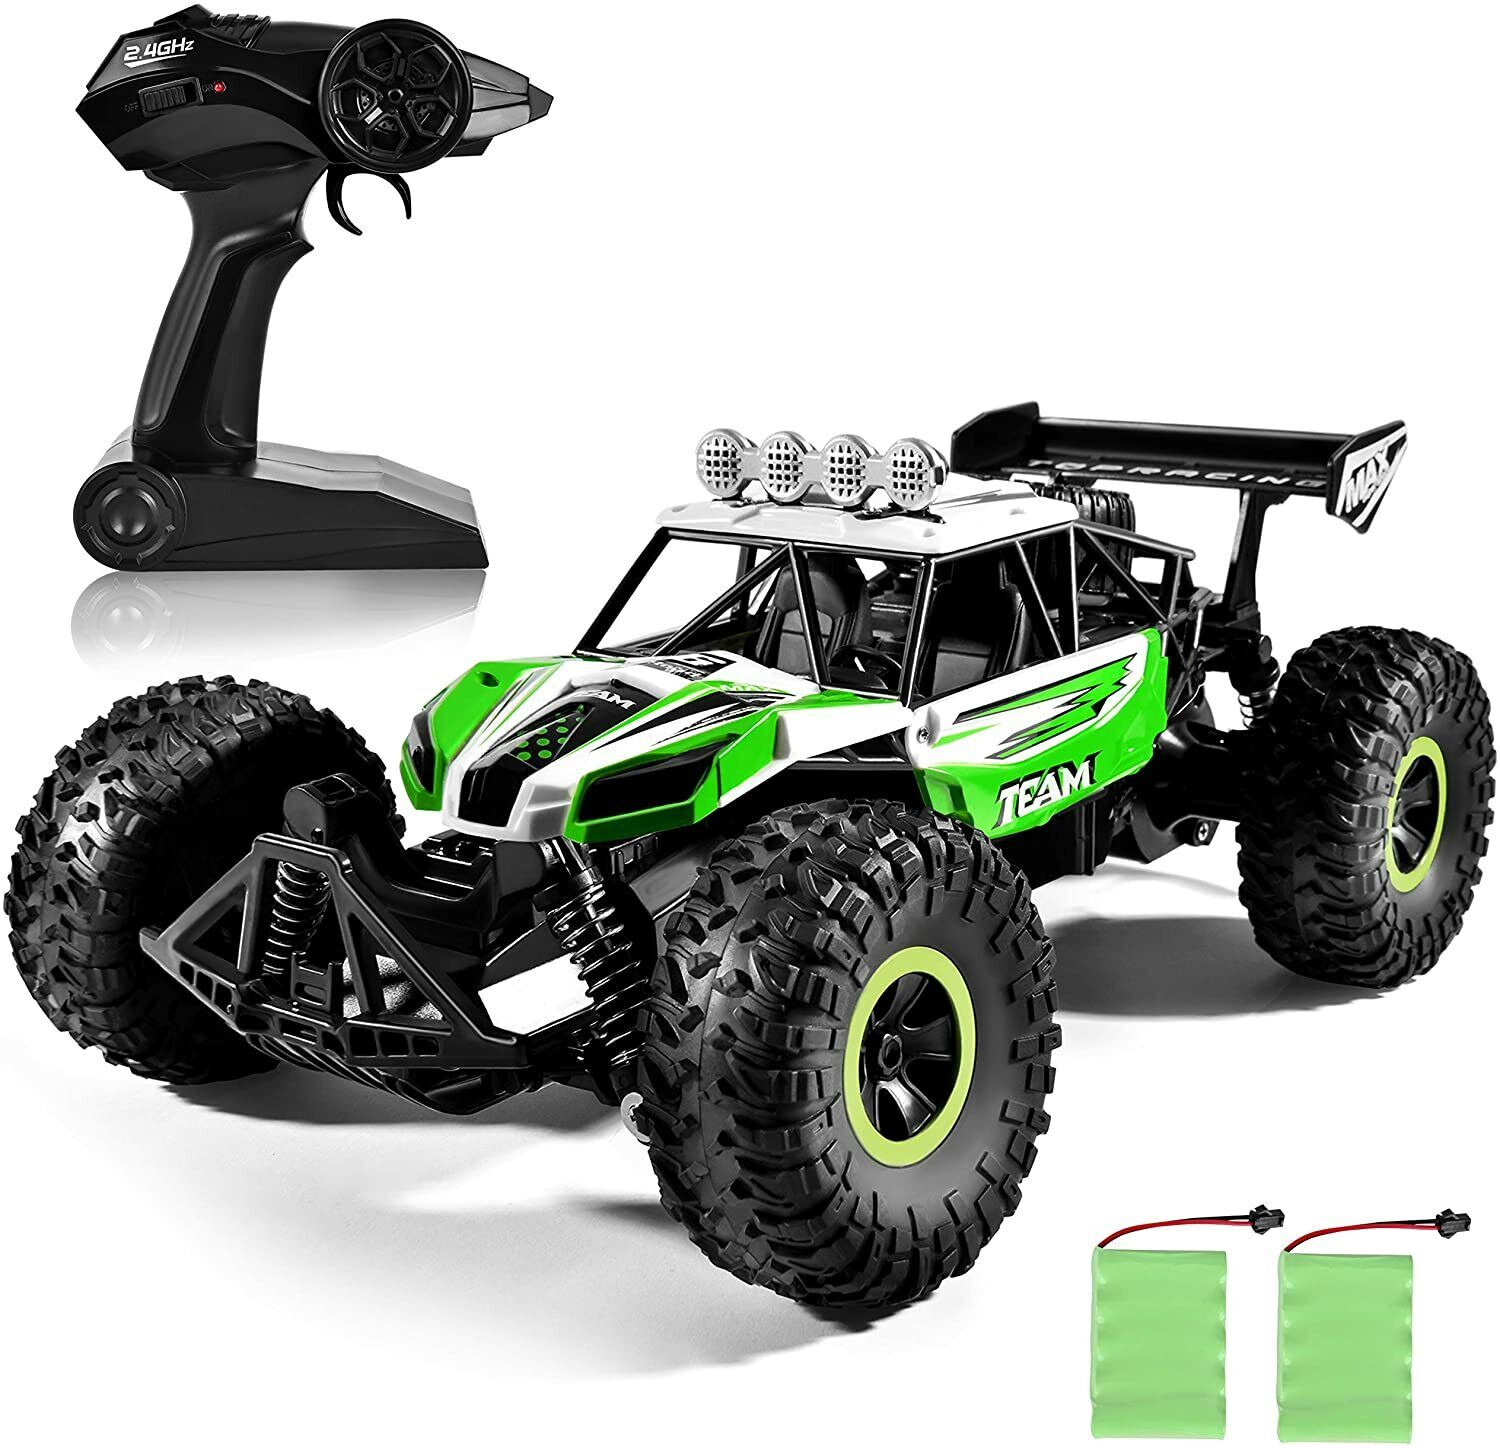 1 16 Scale Remote Control Rc Car Beach Off Road Vehicle Toy Green Black For Sale Online Ebay